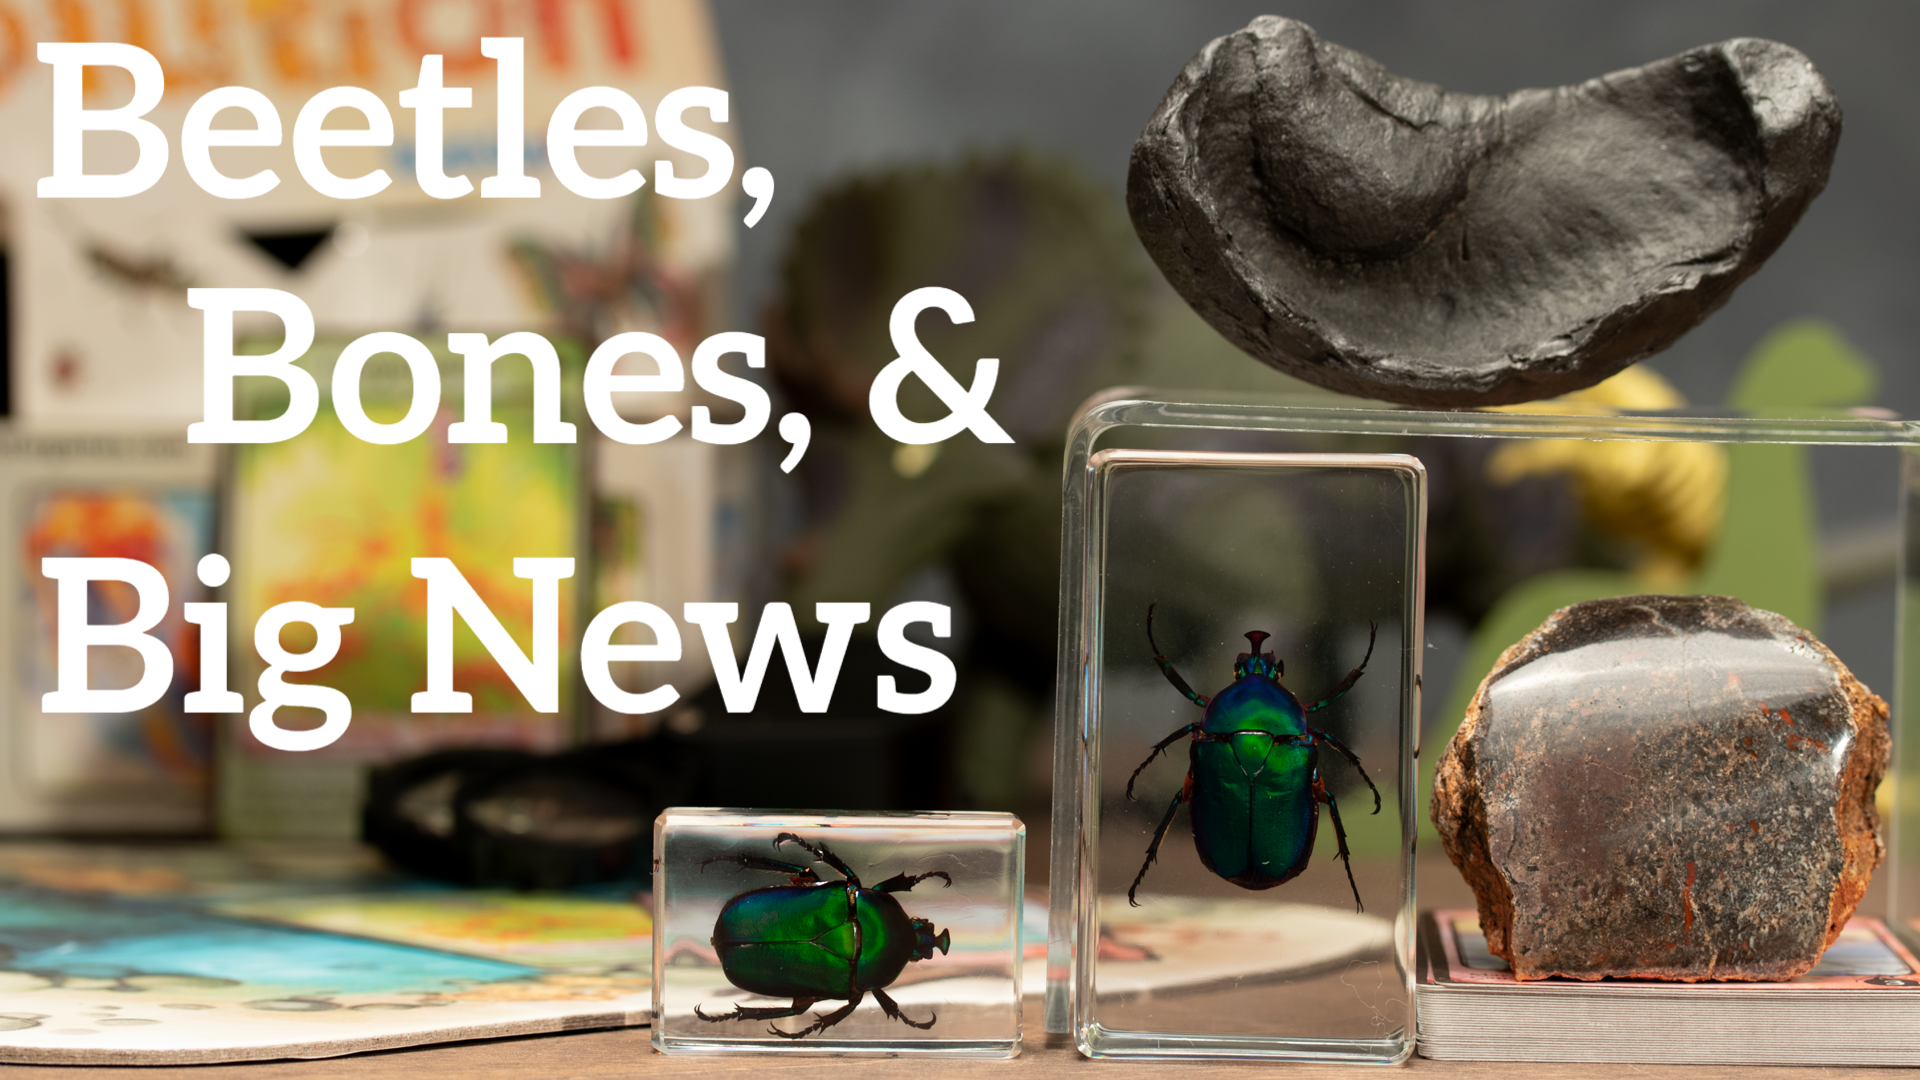 Beetles Bones and Big News!